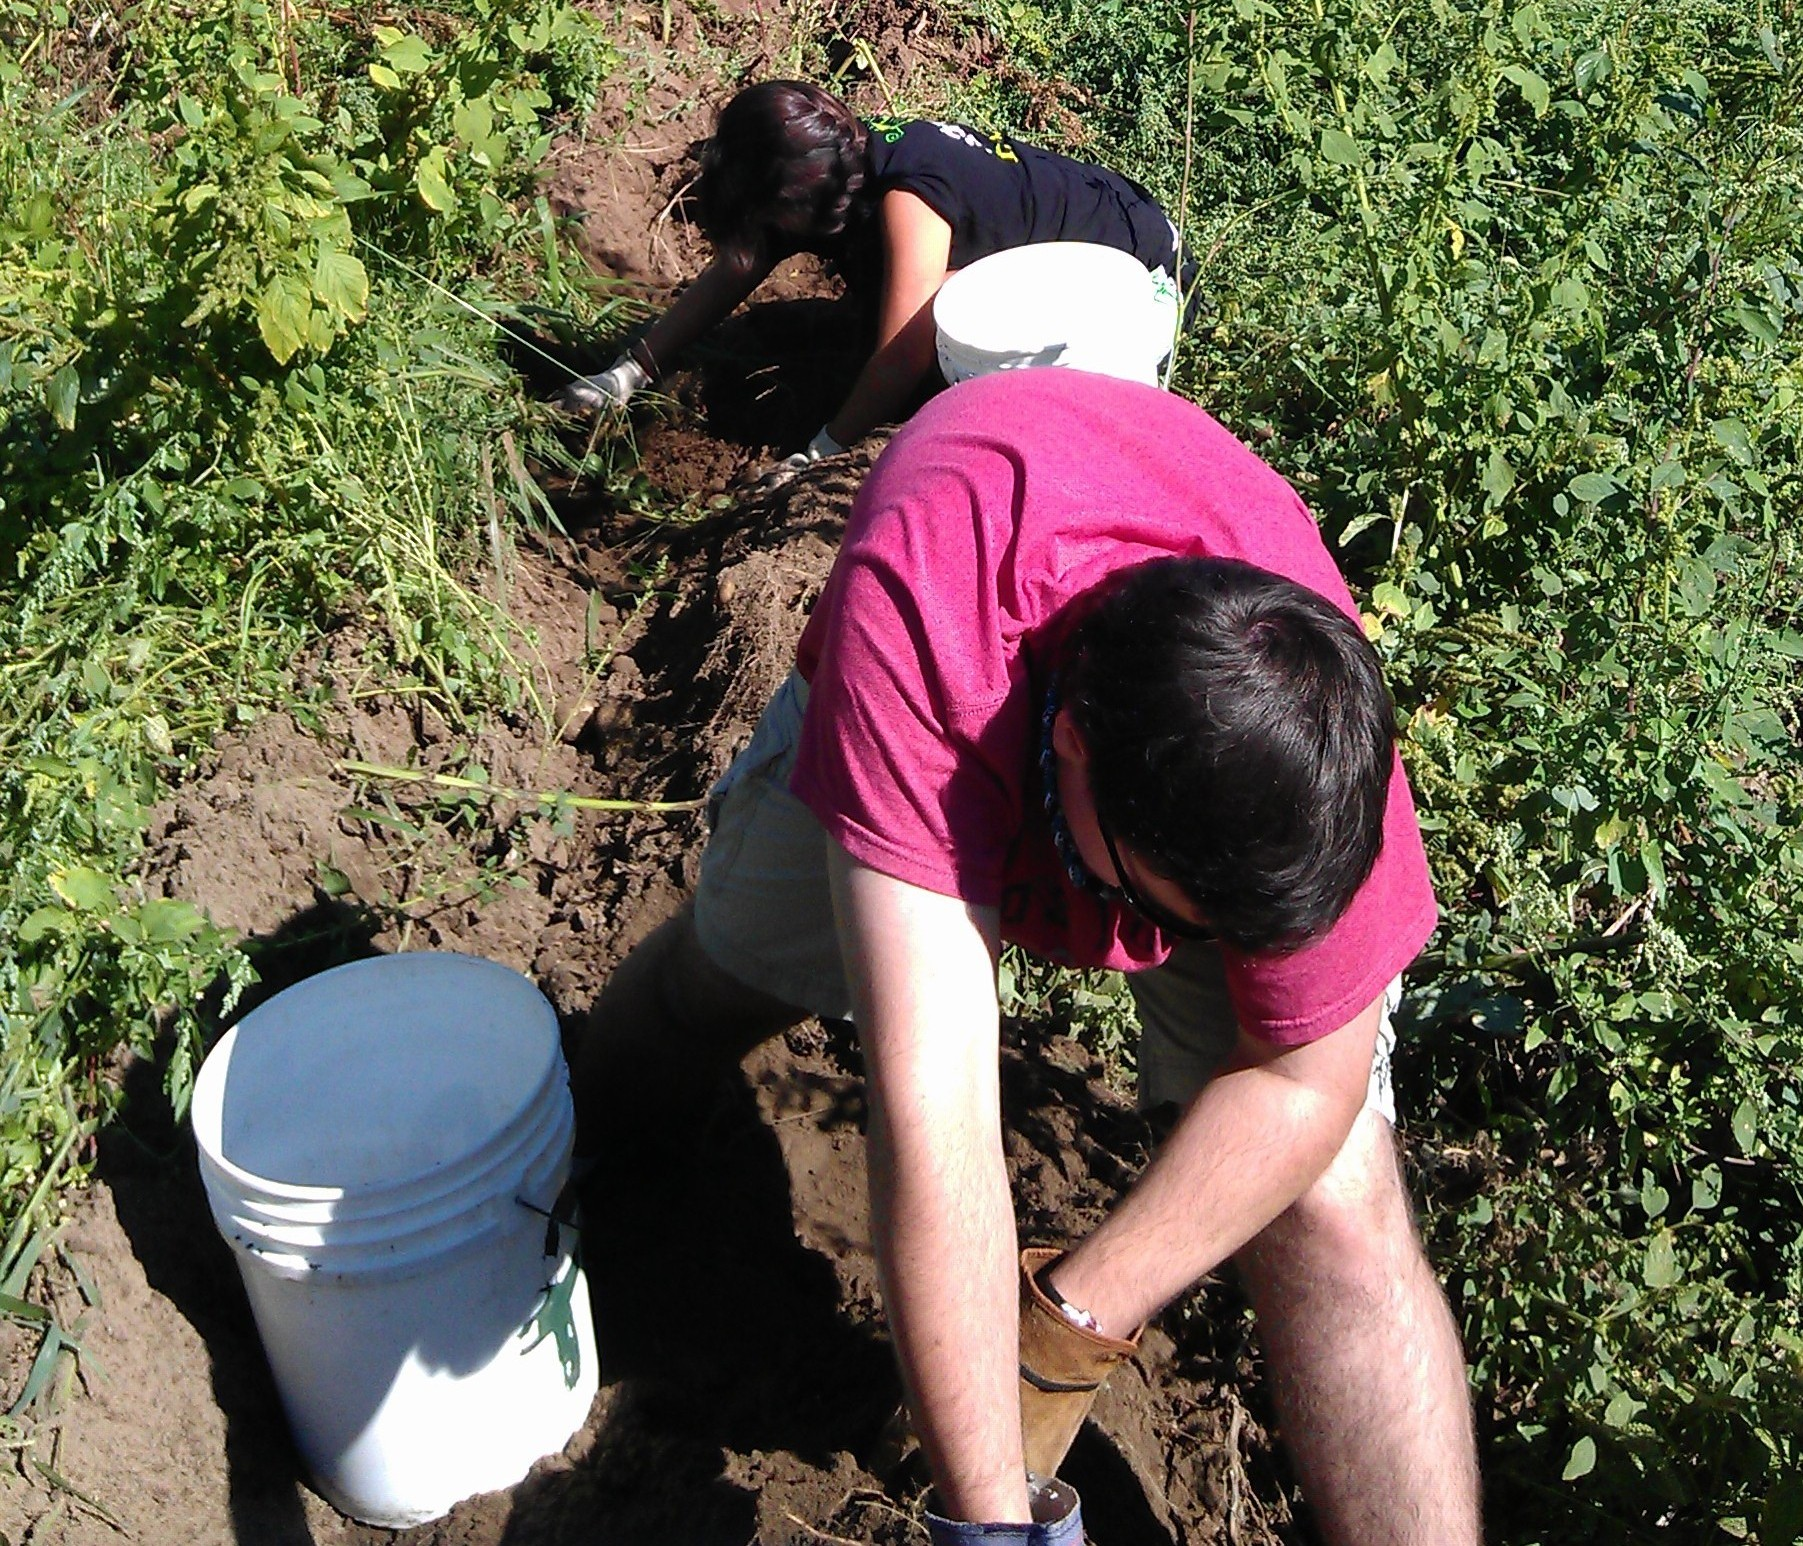 Volunteers dug through the dirt carefully, searching for every potato